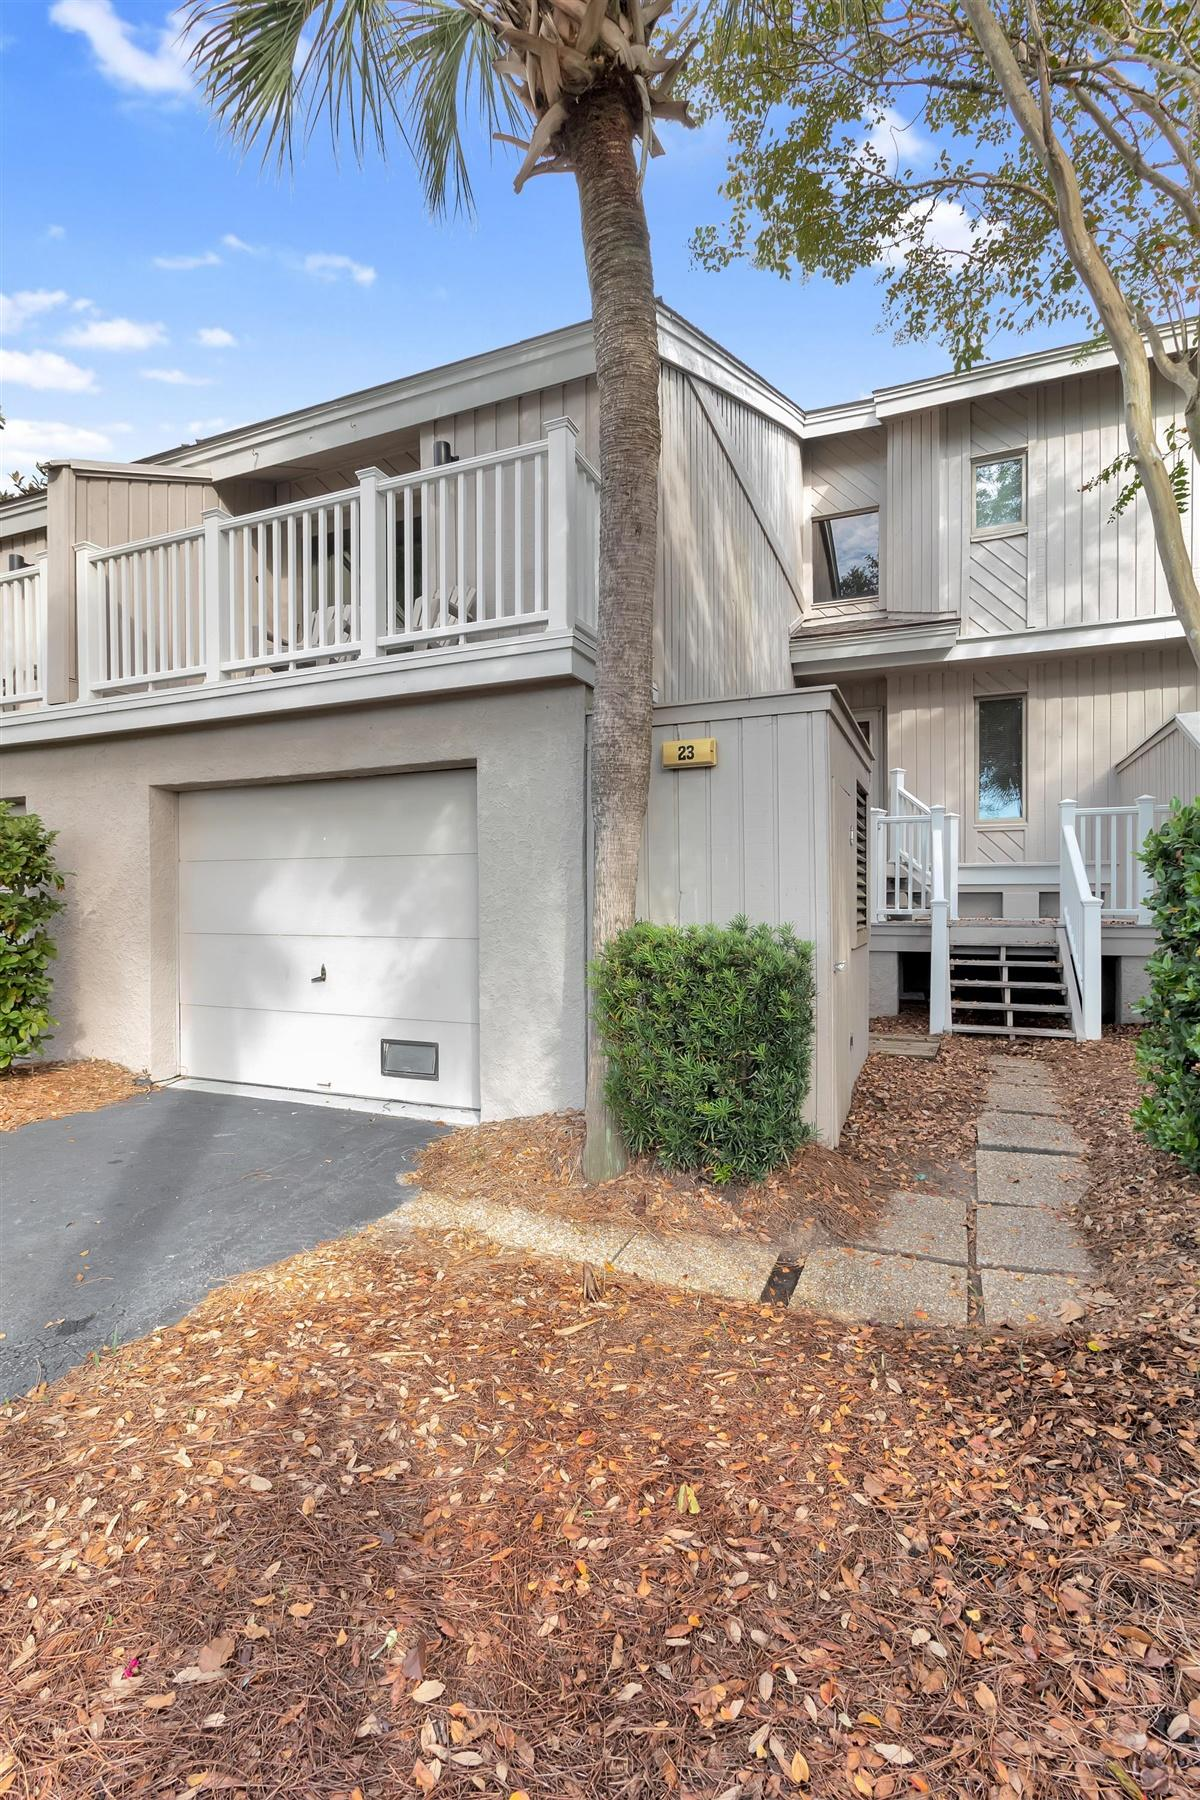 Wild Dunes Homes For Sale - 23 Racquet Club, Isle of Palms, SC - 25